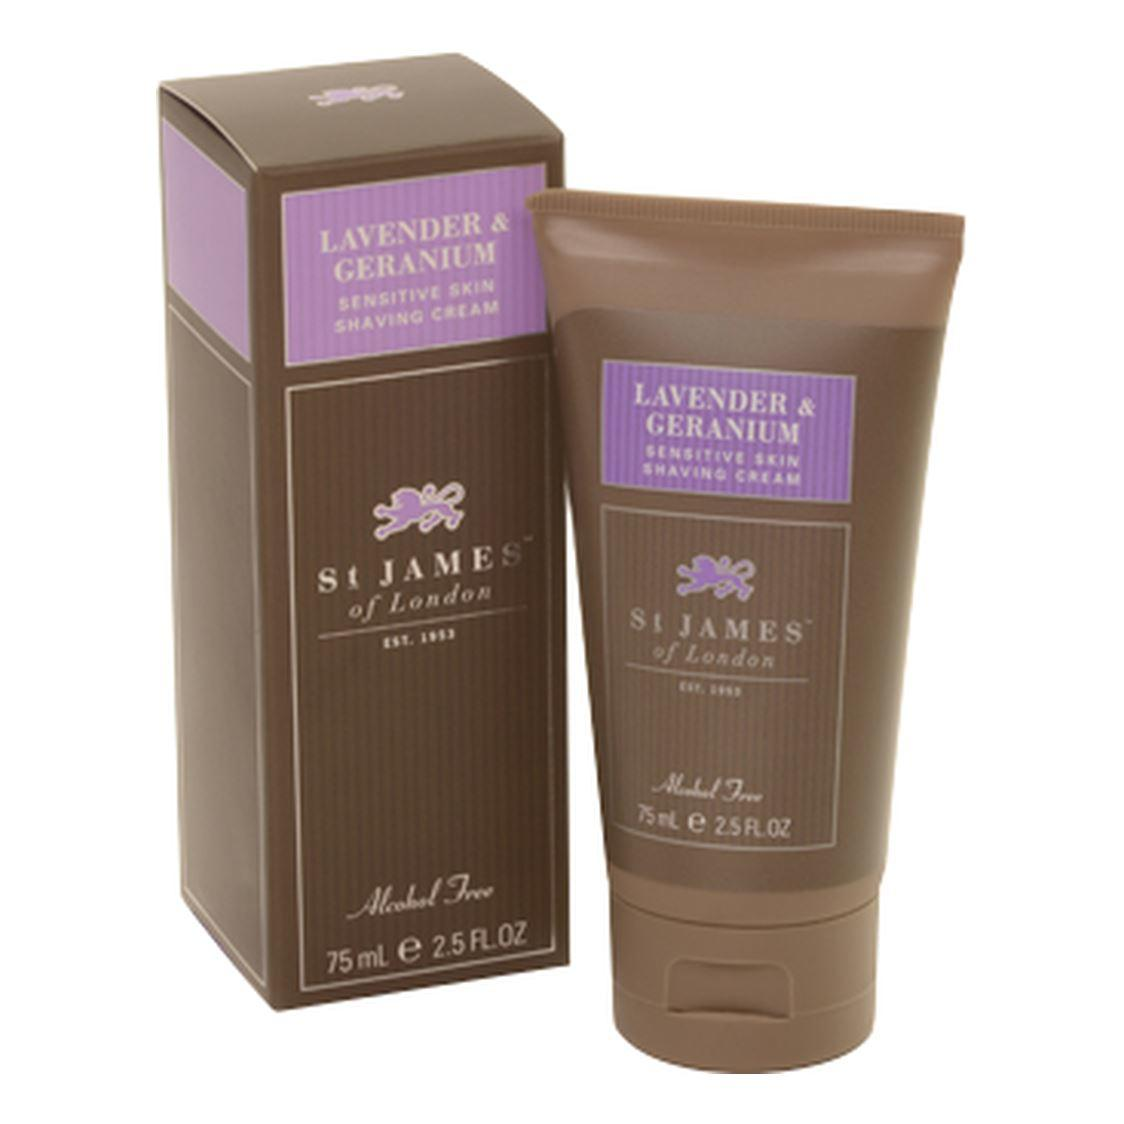 St James of London Unscented, Lavender & Geranium Shaving Cream Tube